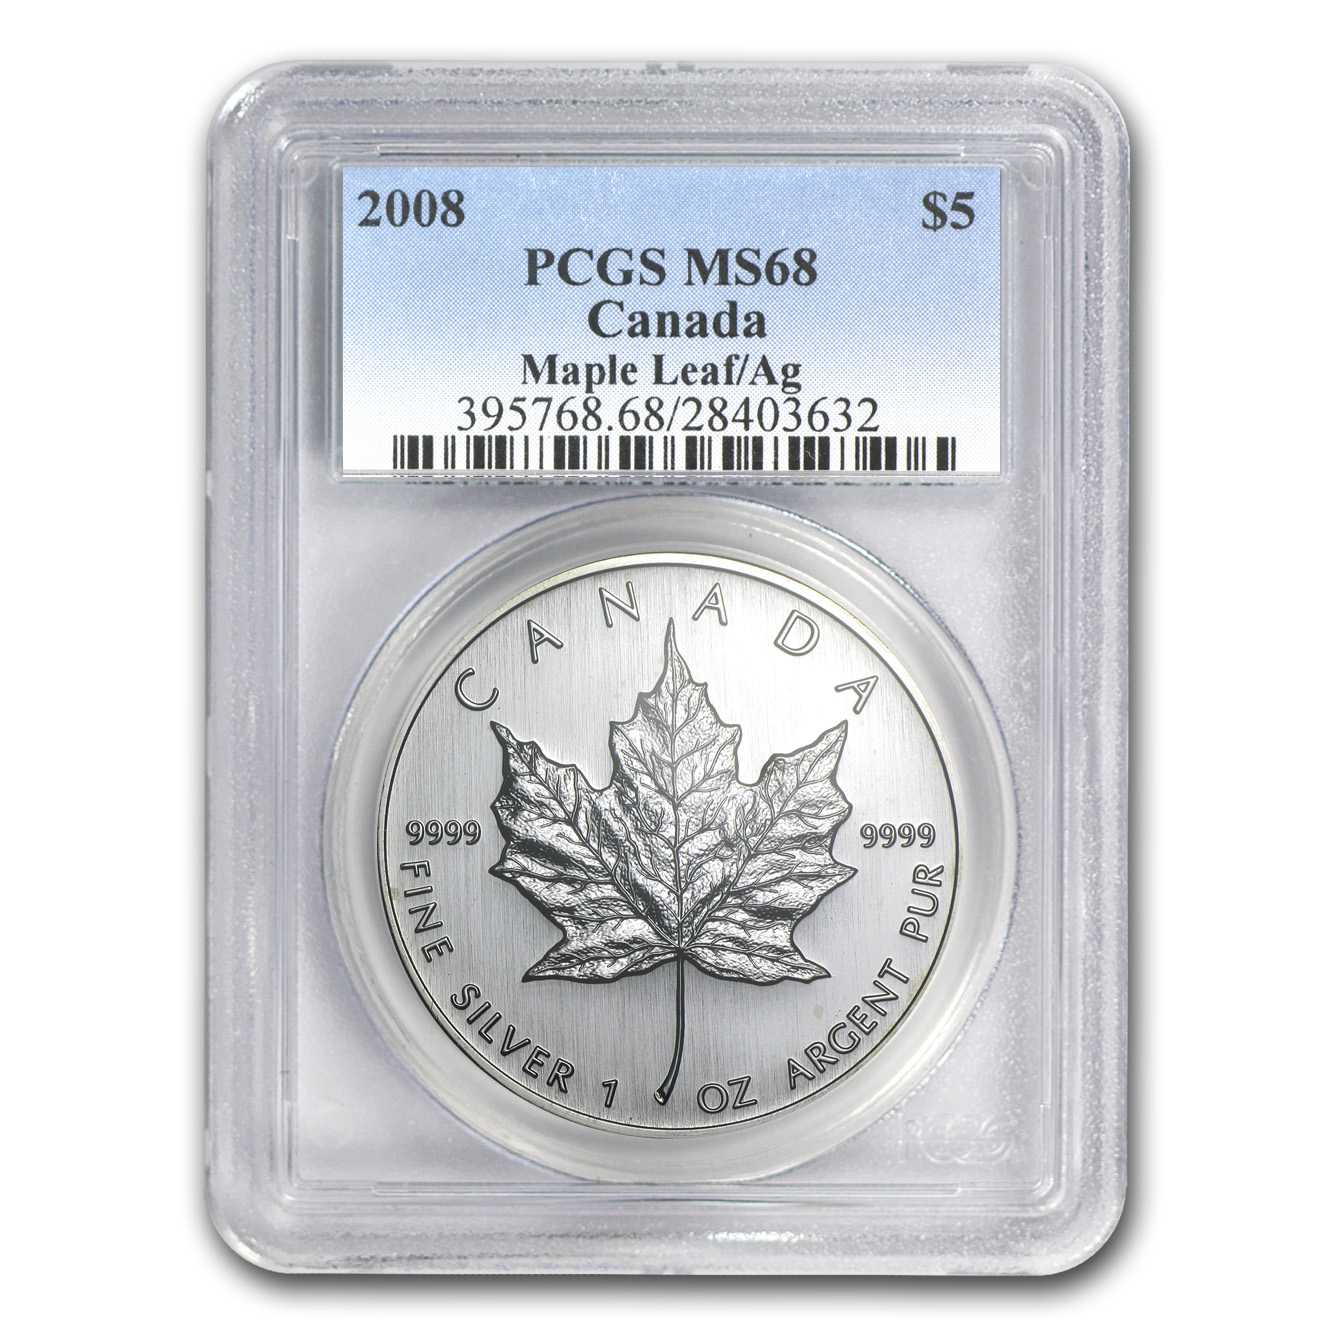 2008 1 oz Silver Canadian Maple Leaf MS-68 PCGS